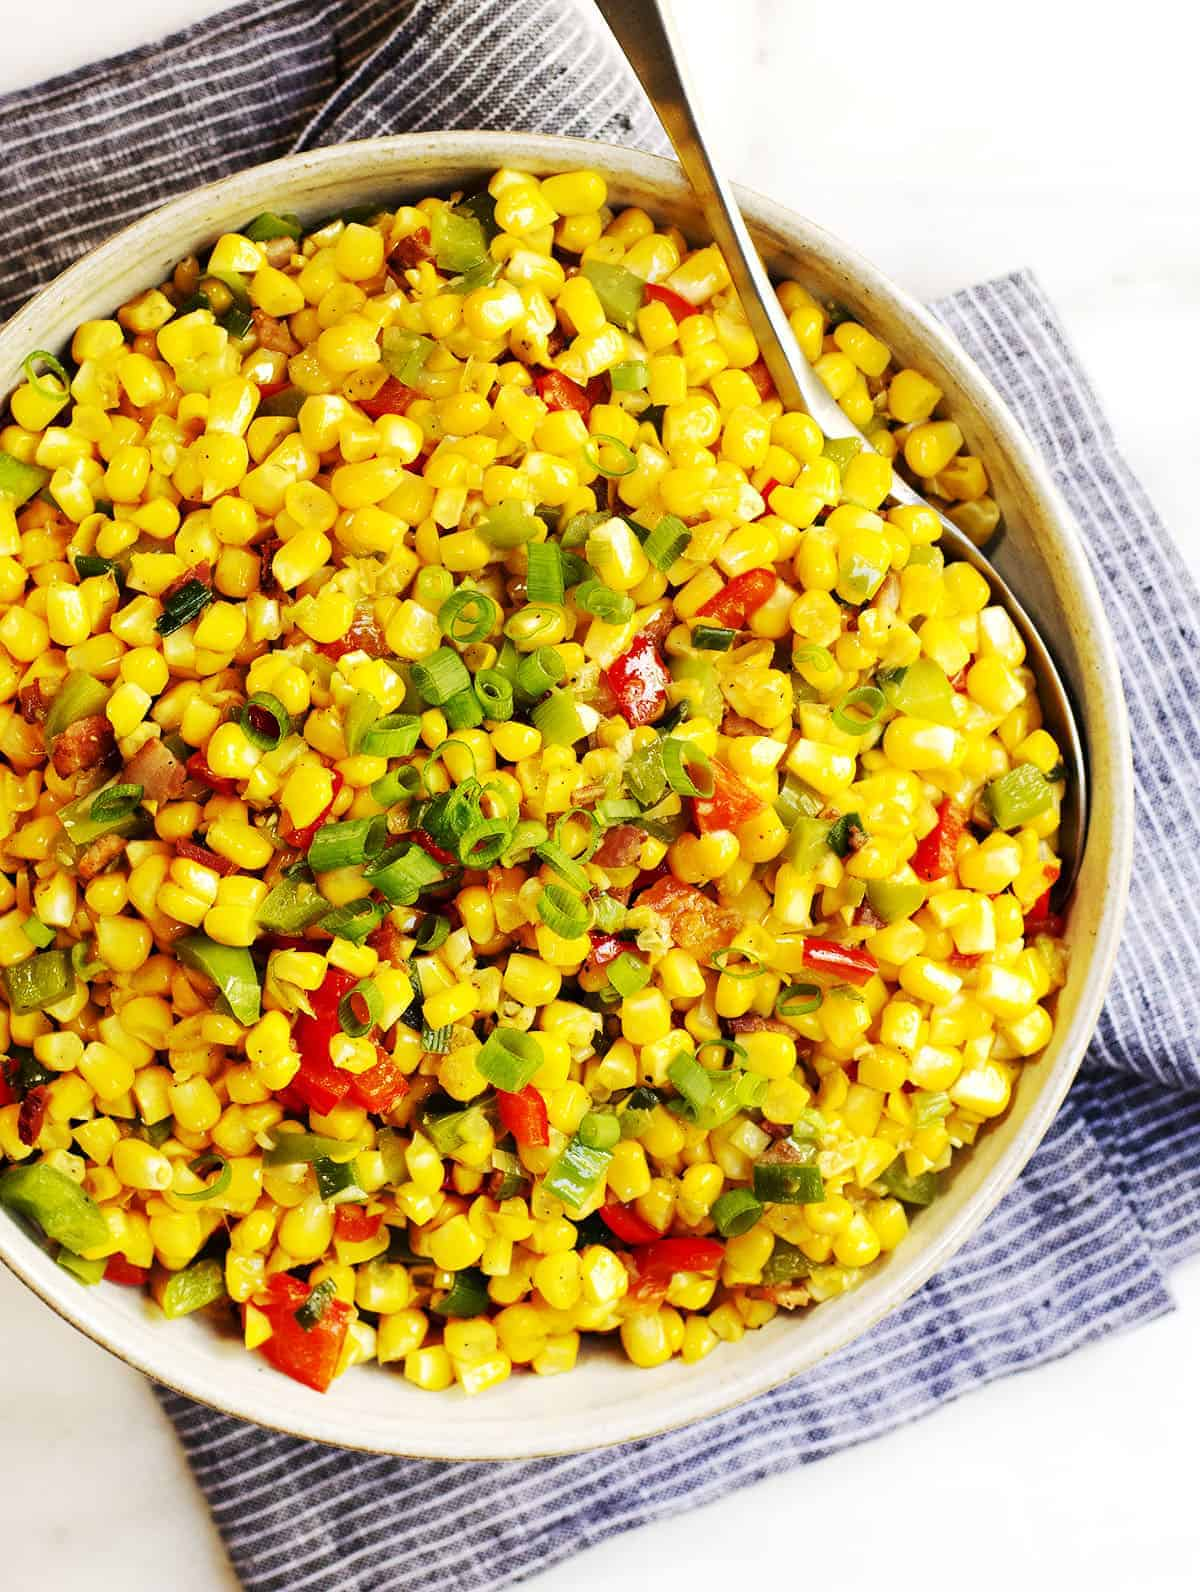 Corn Maque Choux served in a gray ceramic bowl photo from above